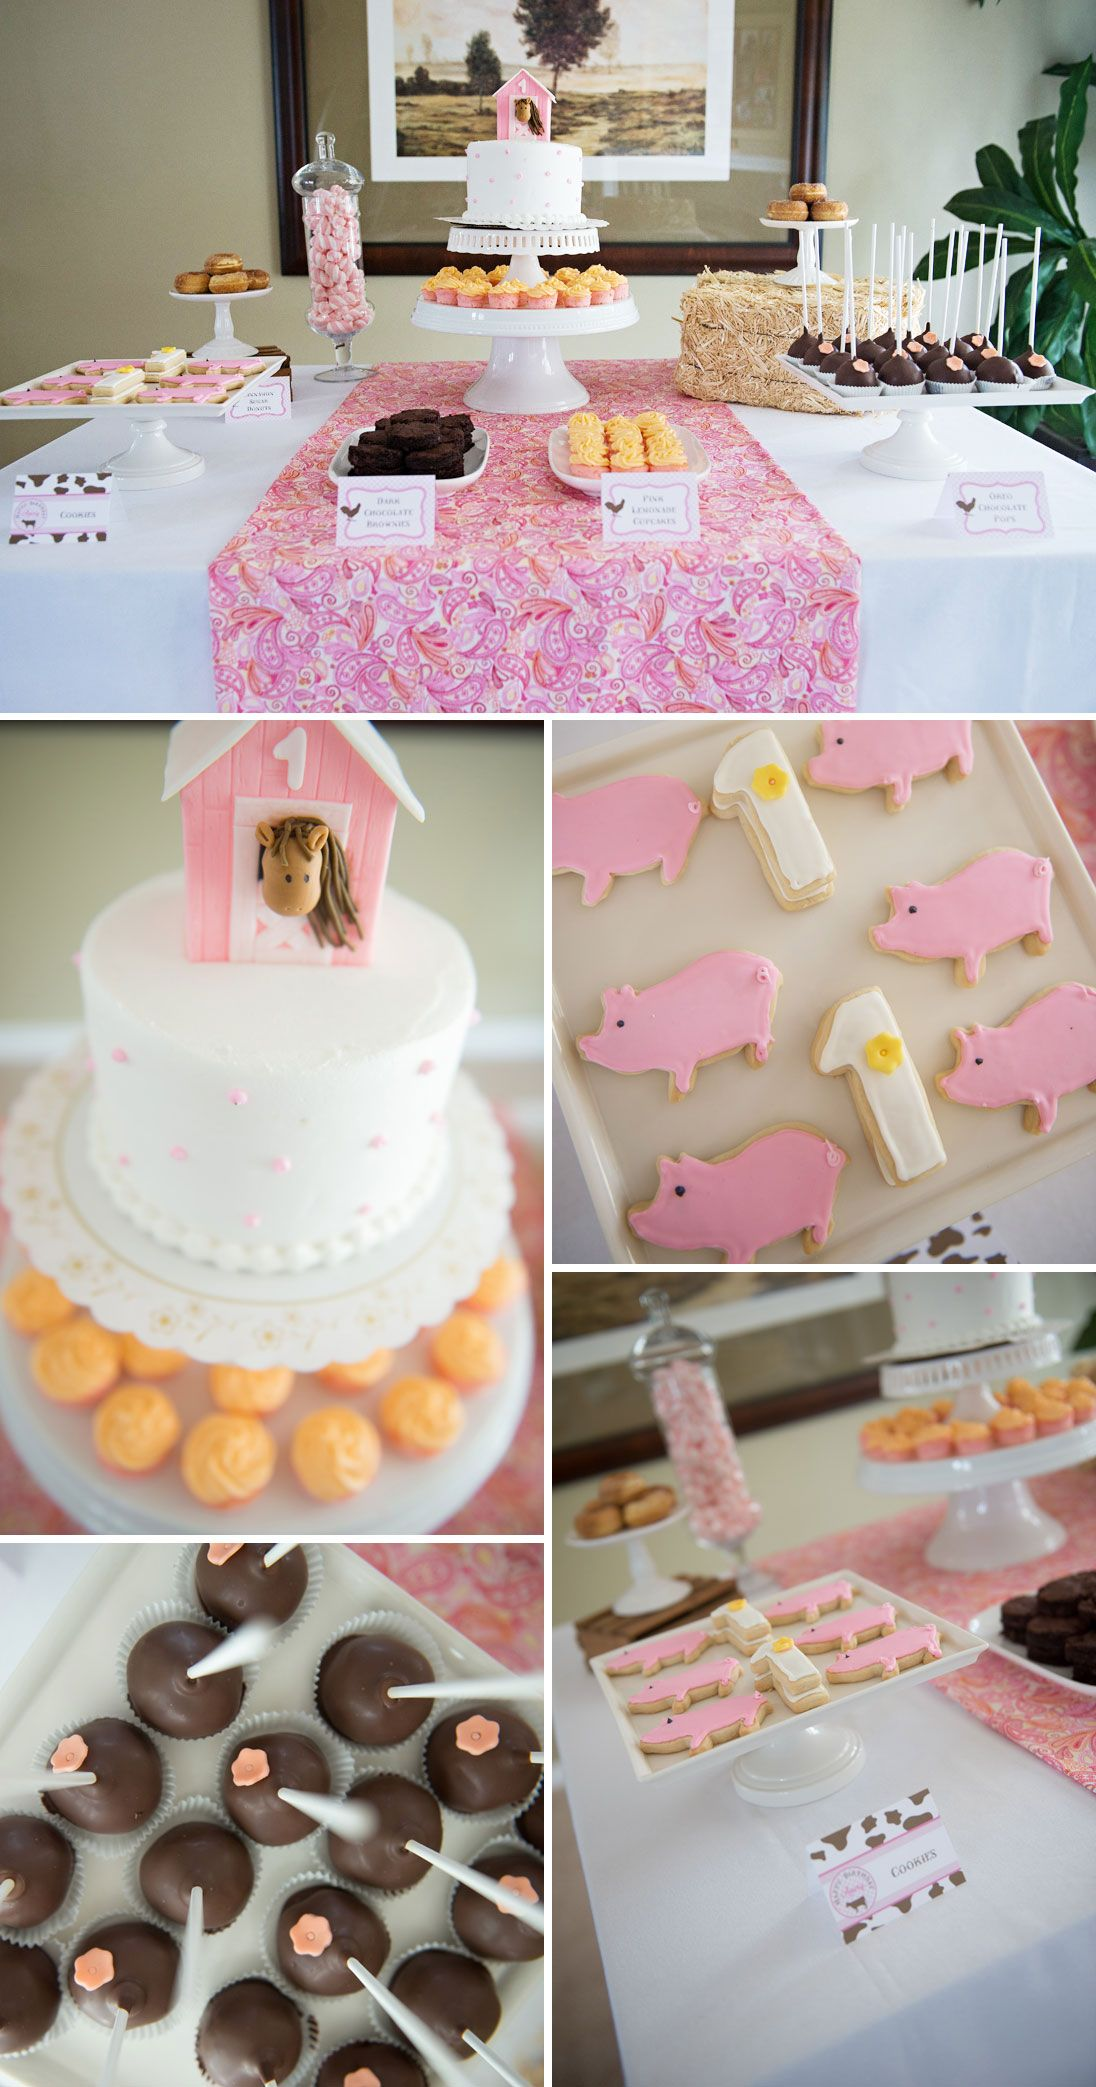 Avery S Farm Animal Themed Birthday Party